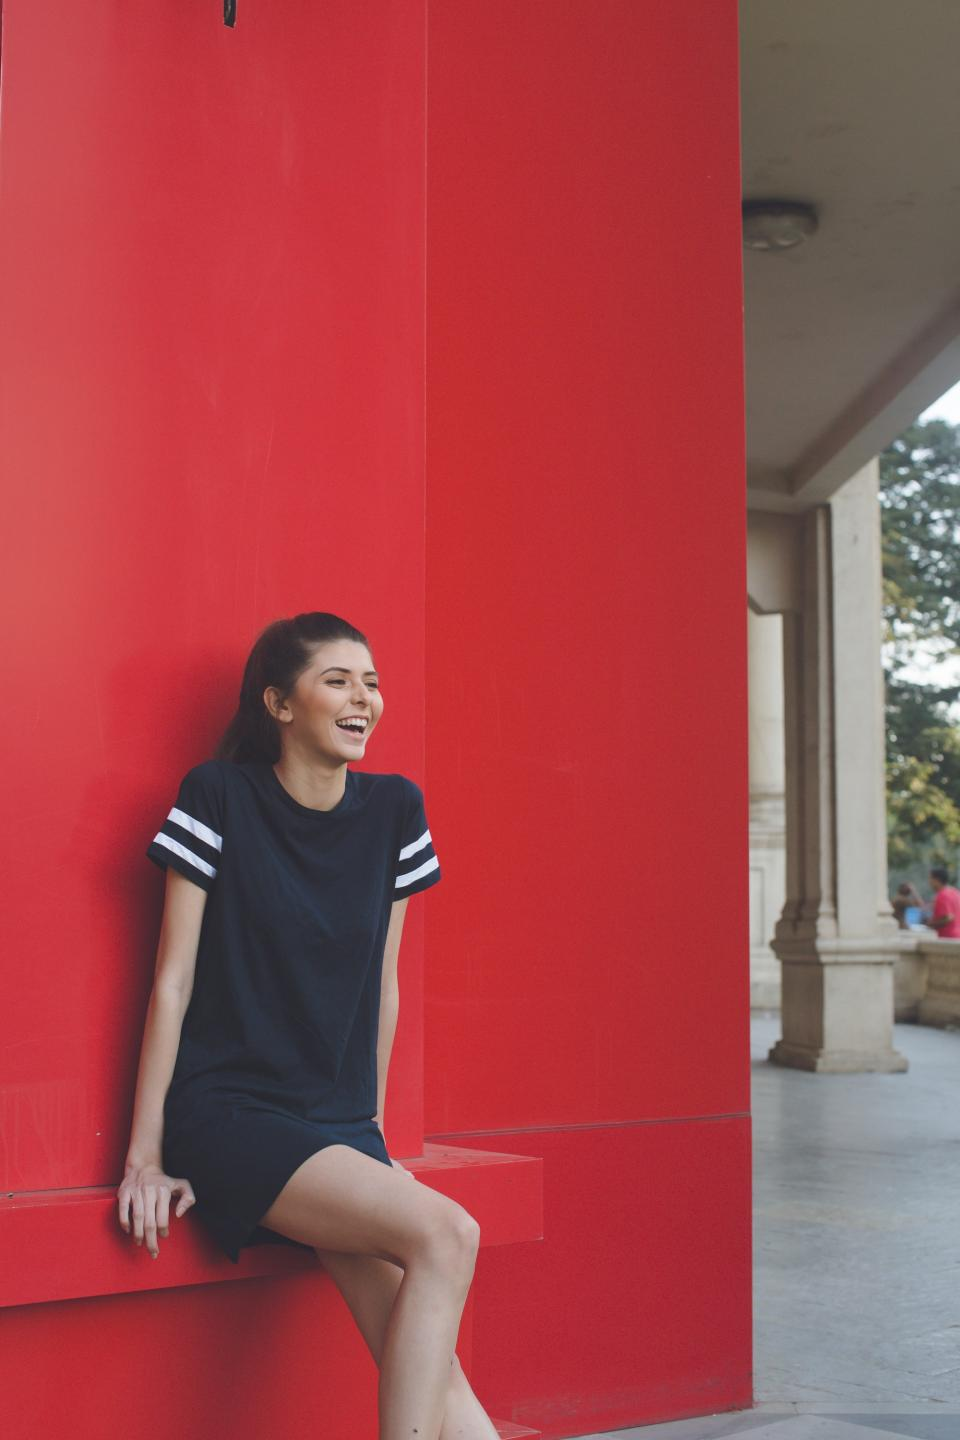 people girl woman smile happy alone red wall building outside